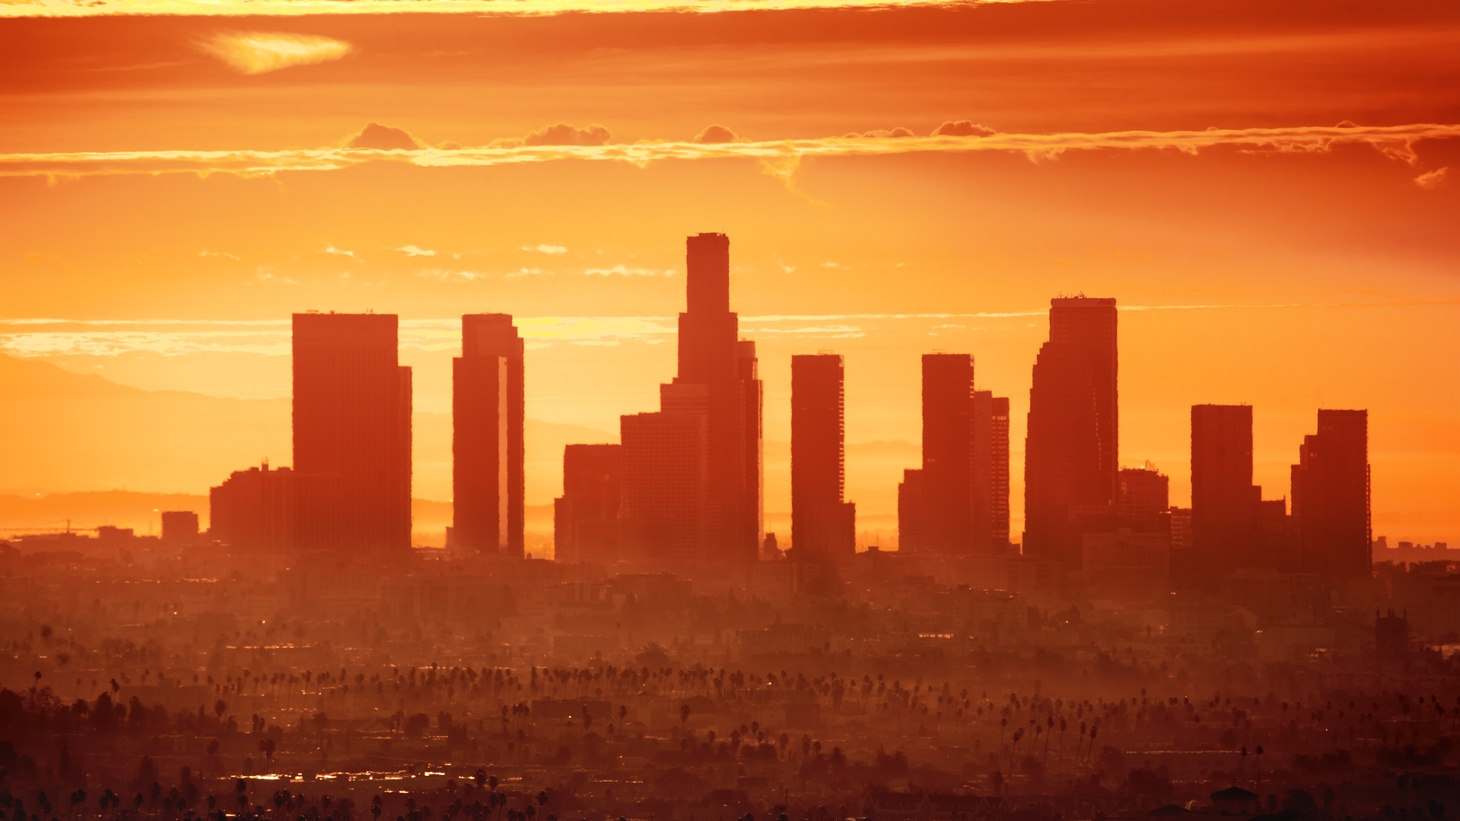 Some California regions could see record-breaking temperatures above 110 degrees this week.